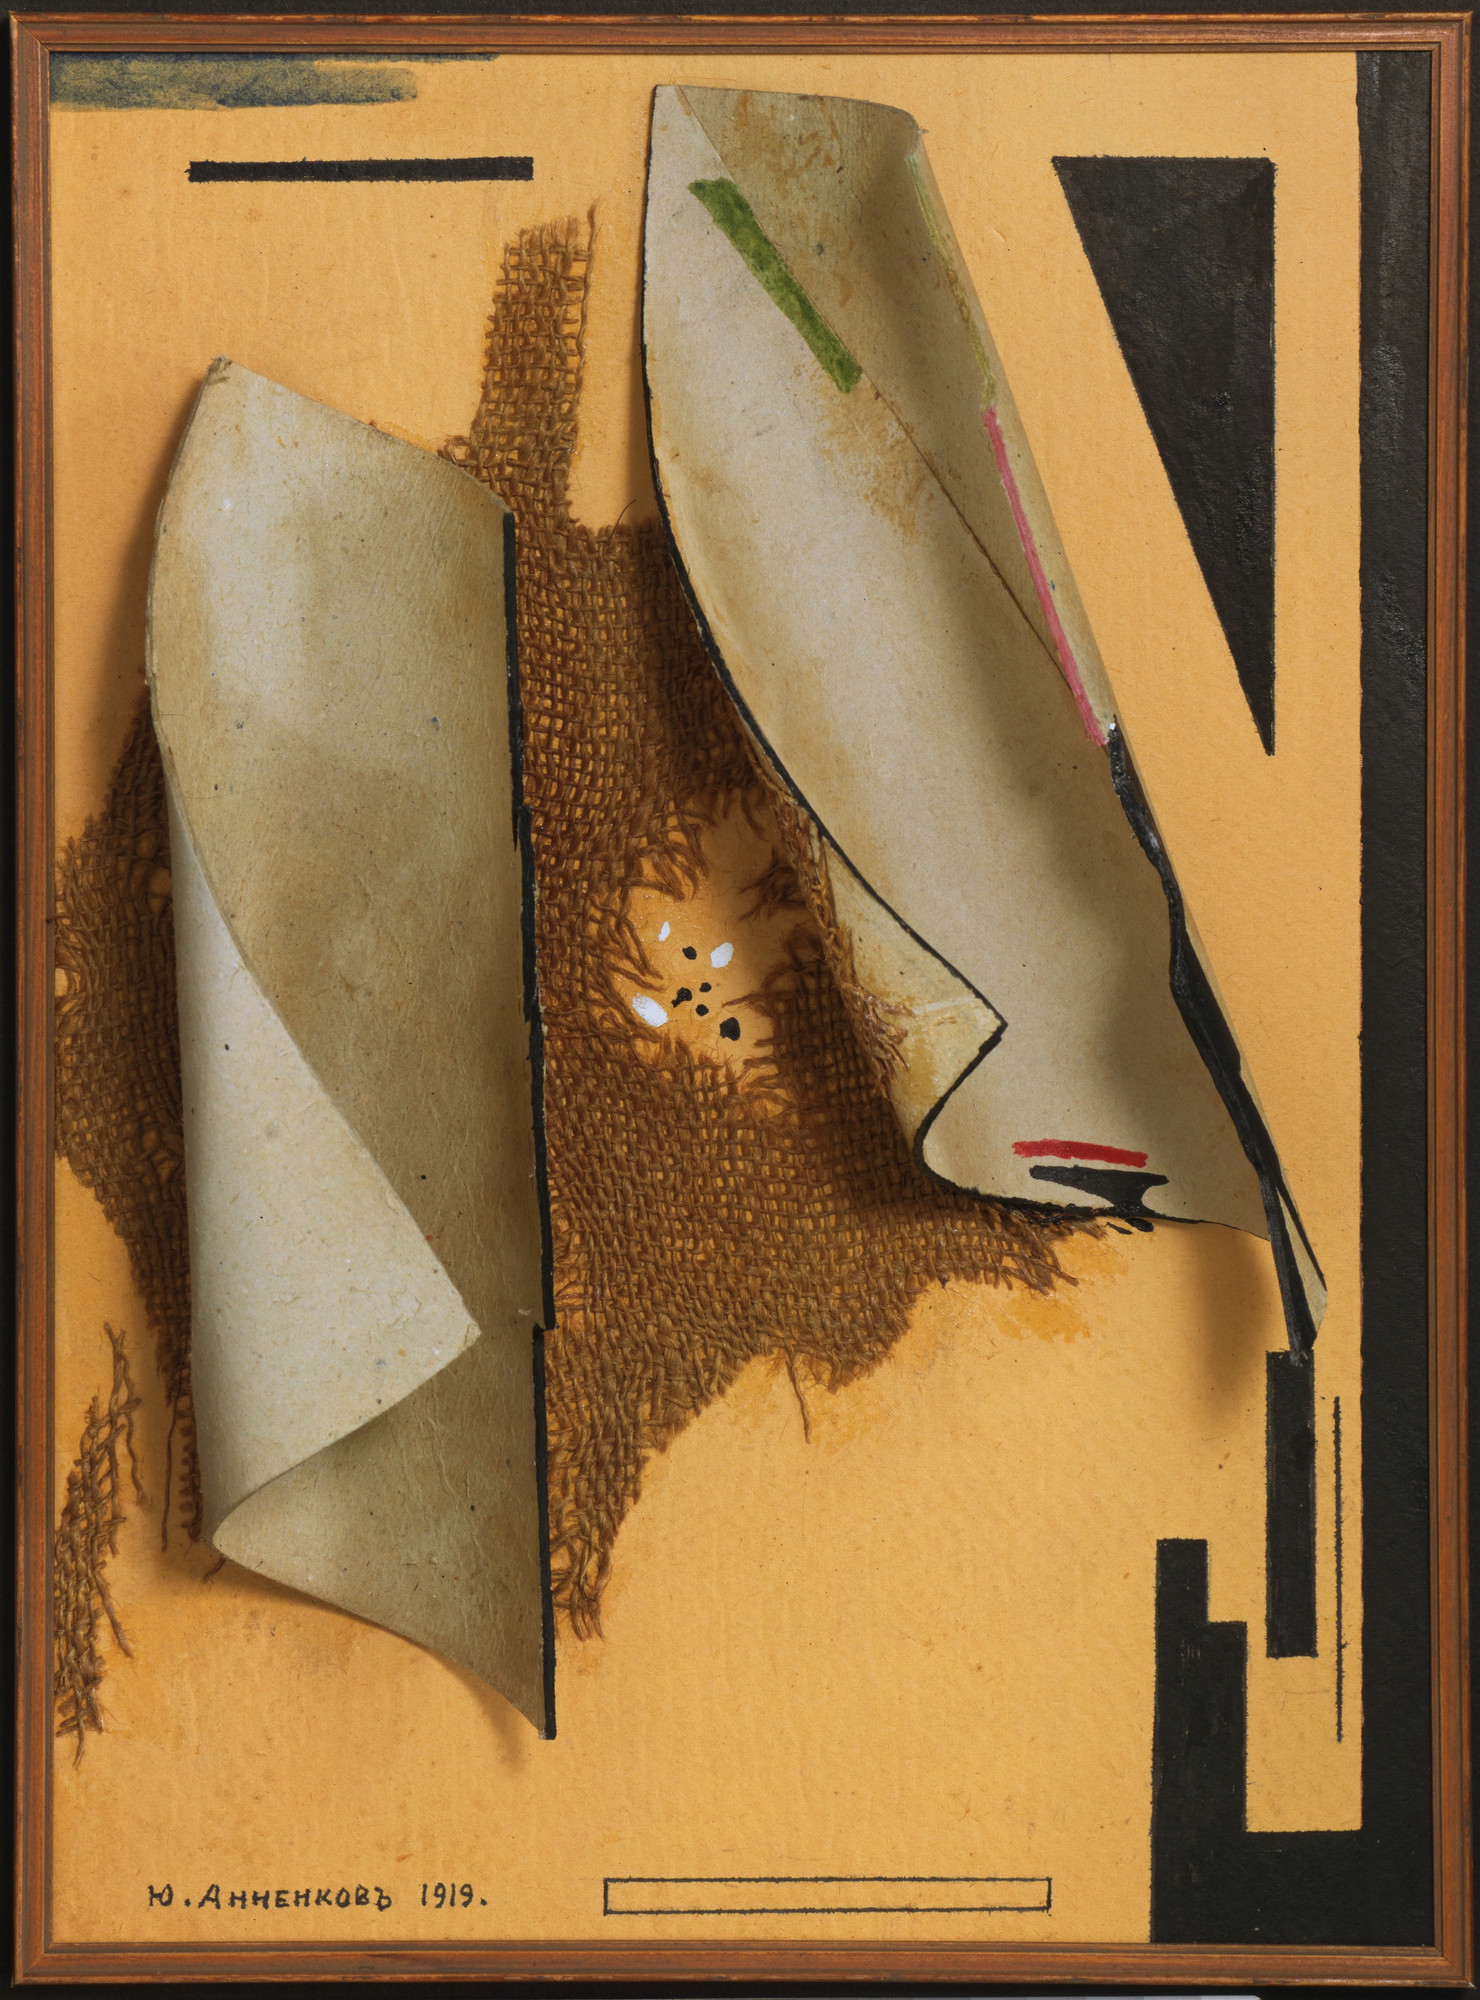 Iurii Annenkov. Relief-Collage. 1919